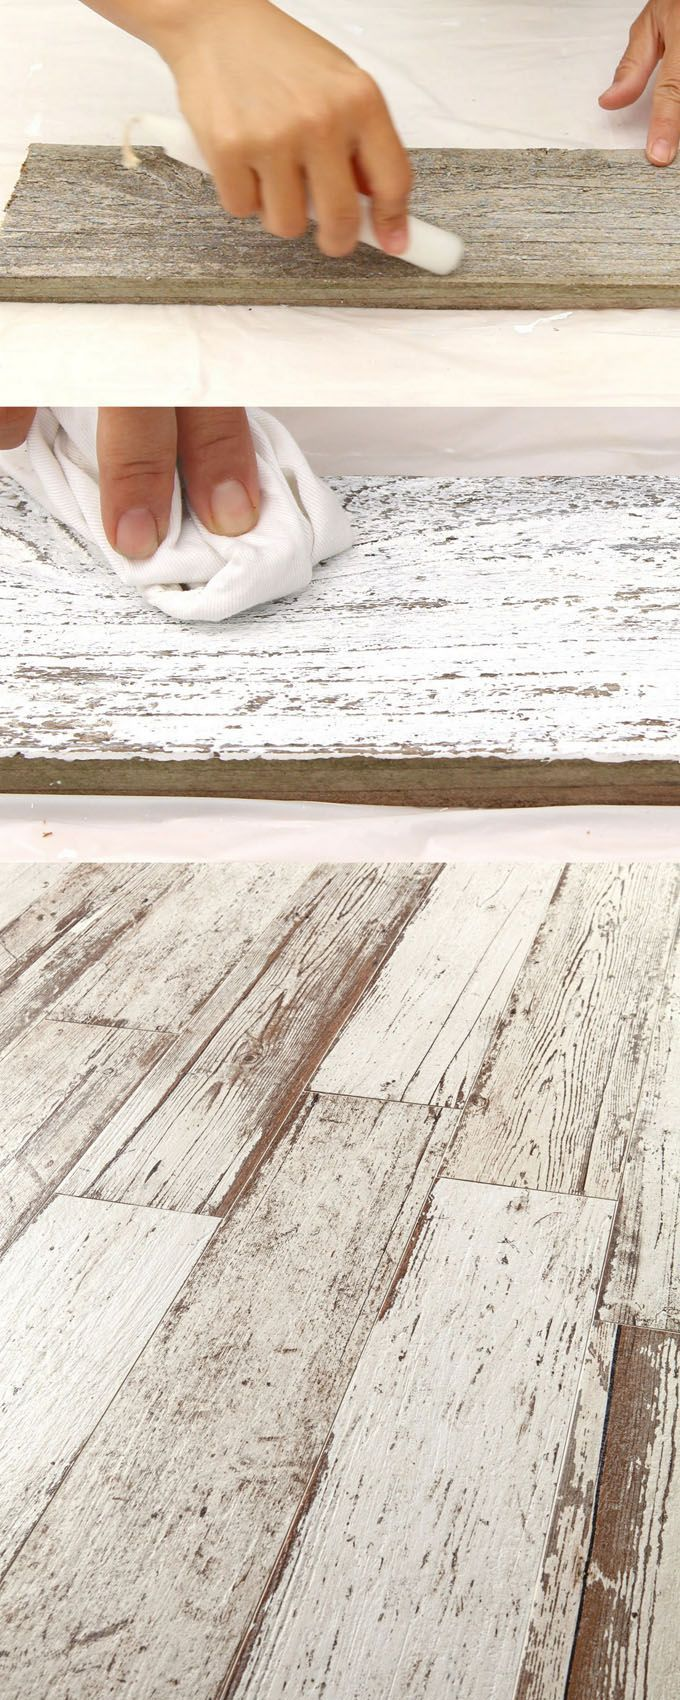 How To Whitewash Wood In 3 Simple Ways An Ultimate Guide Madera